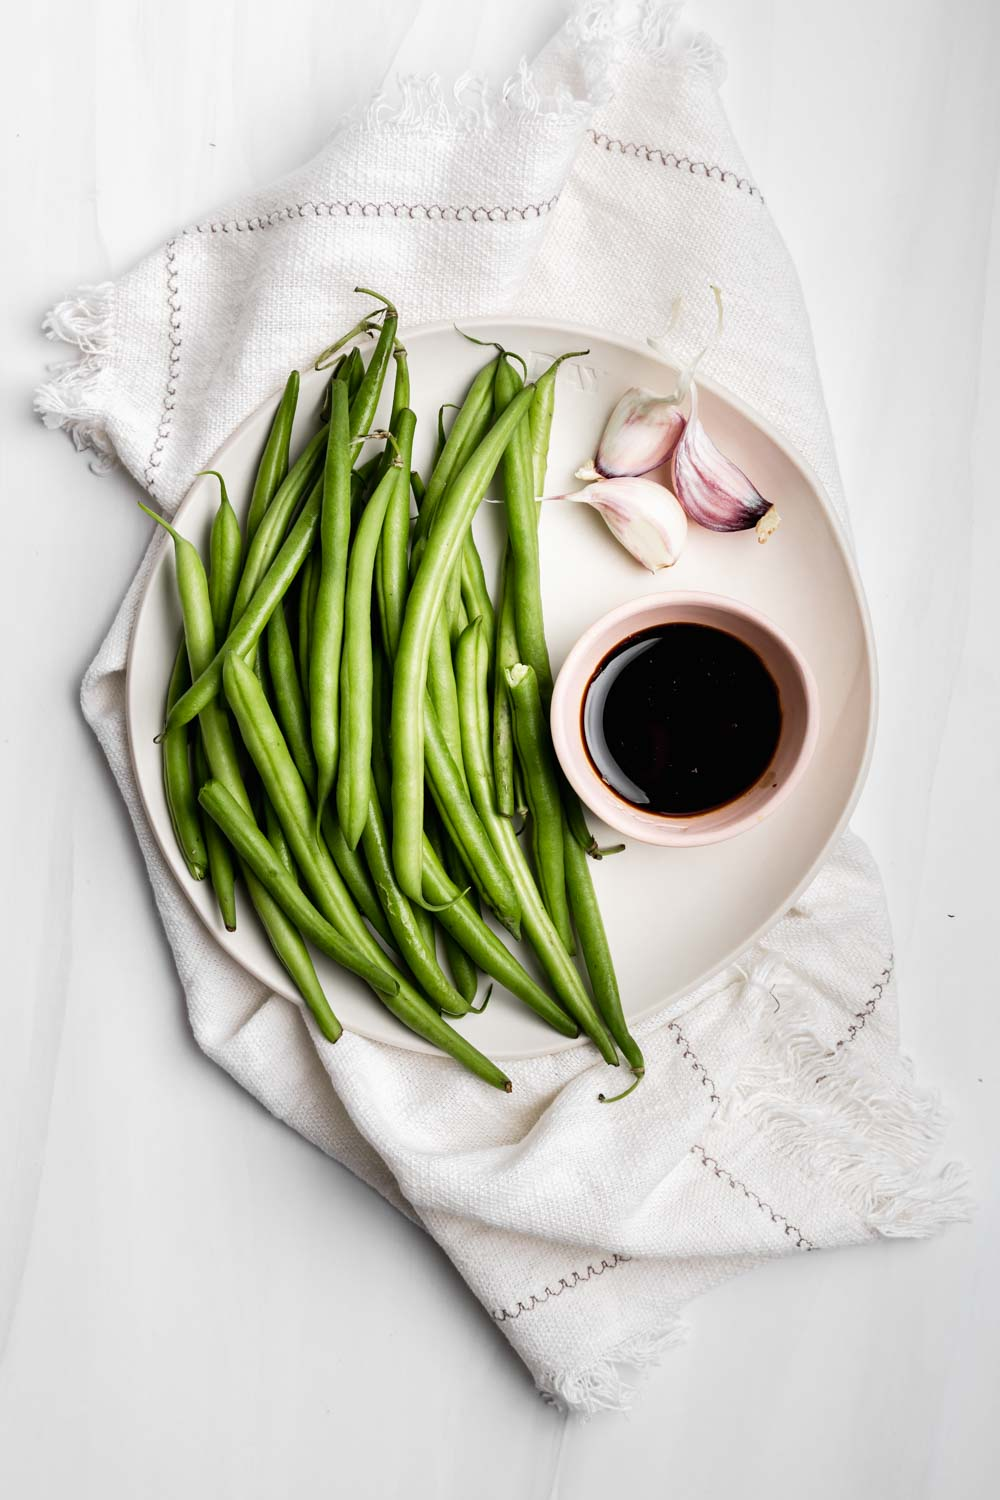 white plate with ingredients for making easy green beans recipe